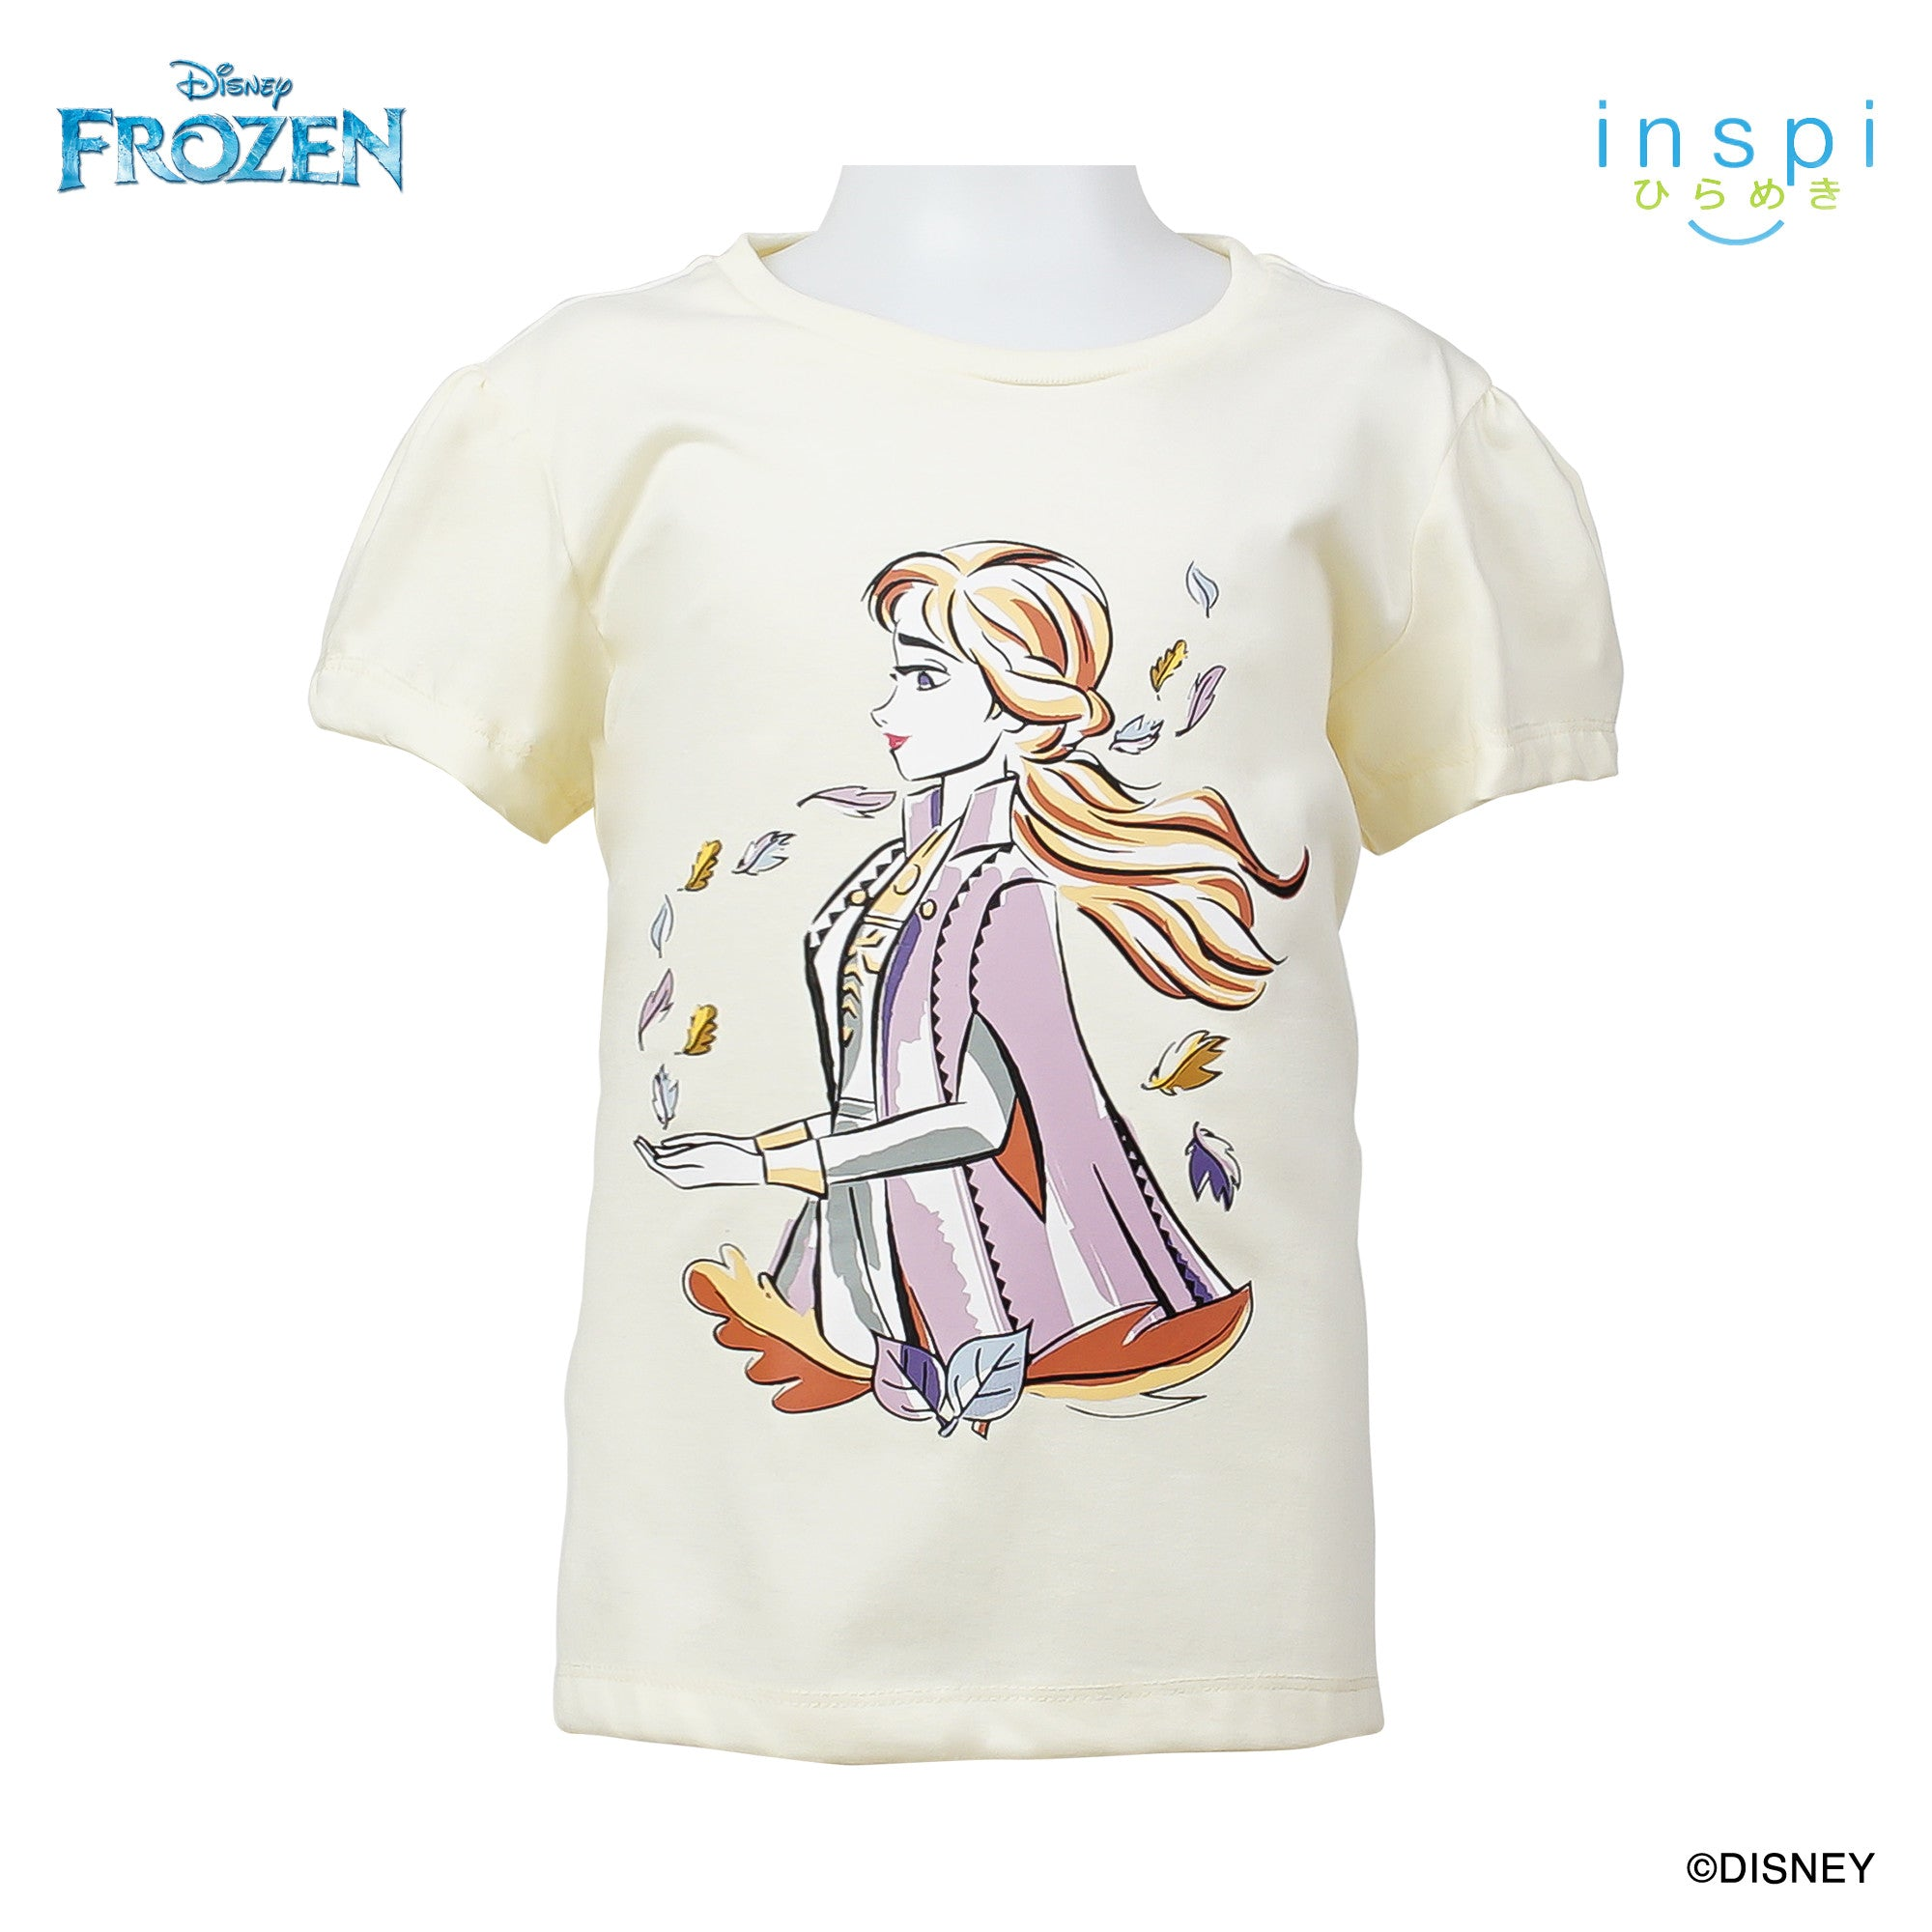 Disney Frozen Anna Tshirt in Creamy White for Girls Inspi Shirt